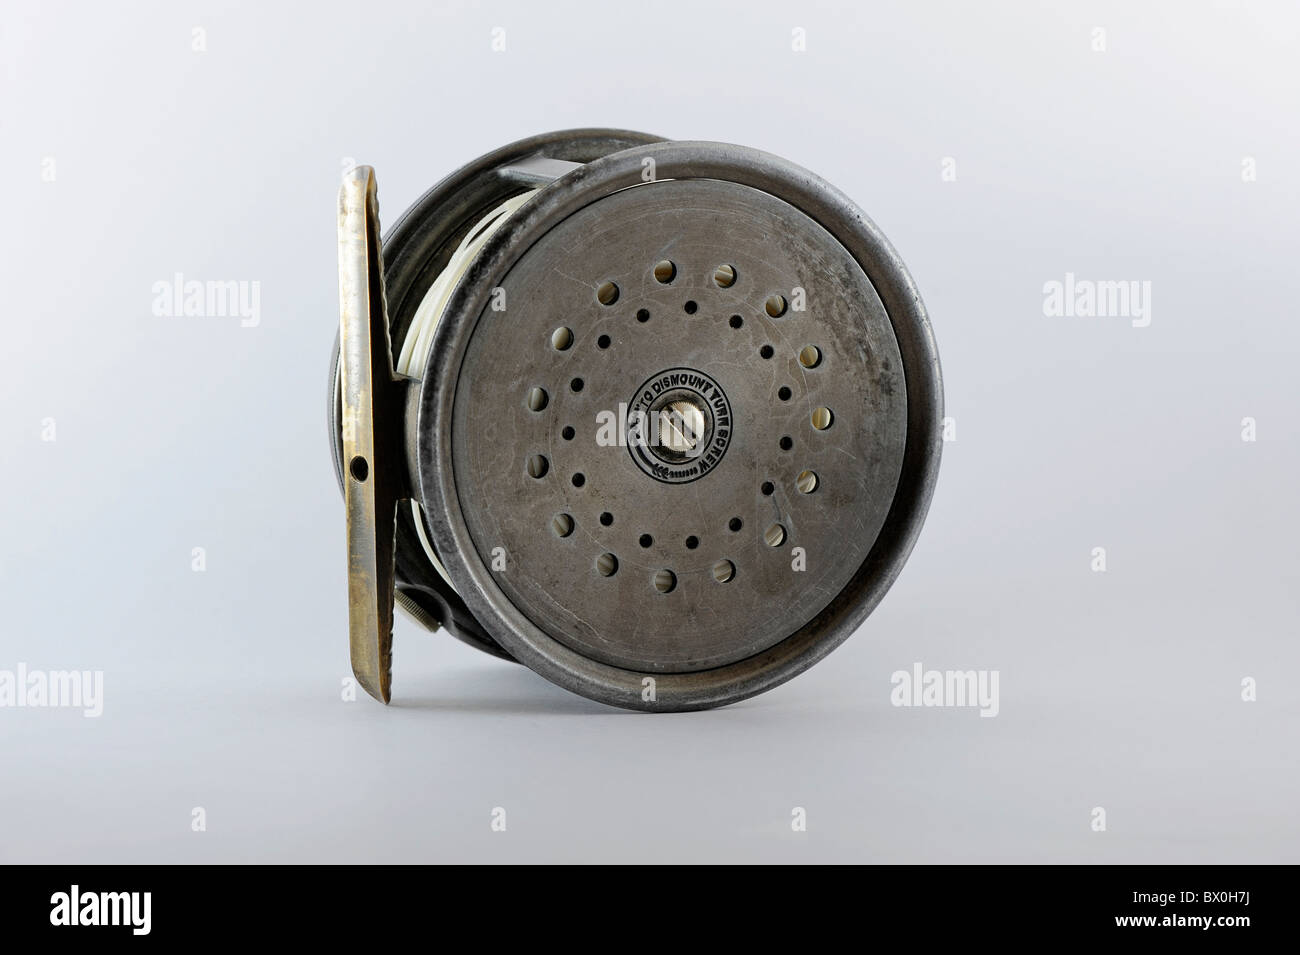 Hardy Perfect antique Salmon fly fishing reel against a plain white background - Stock Image